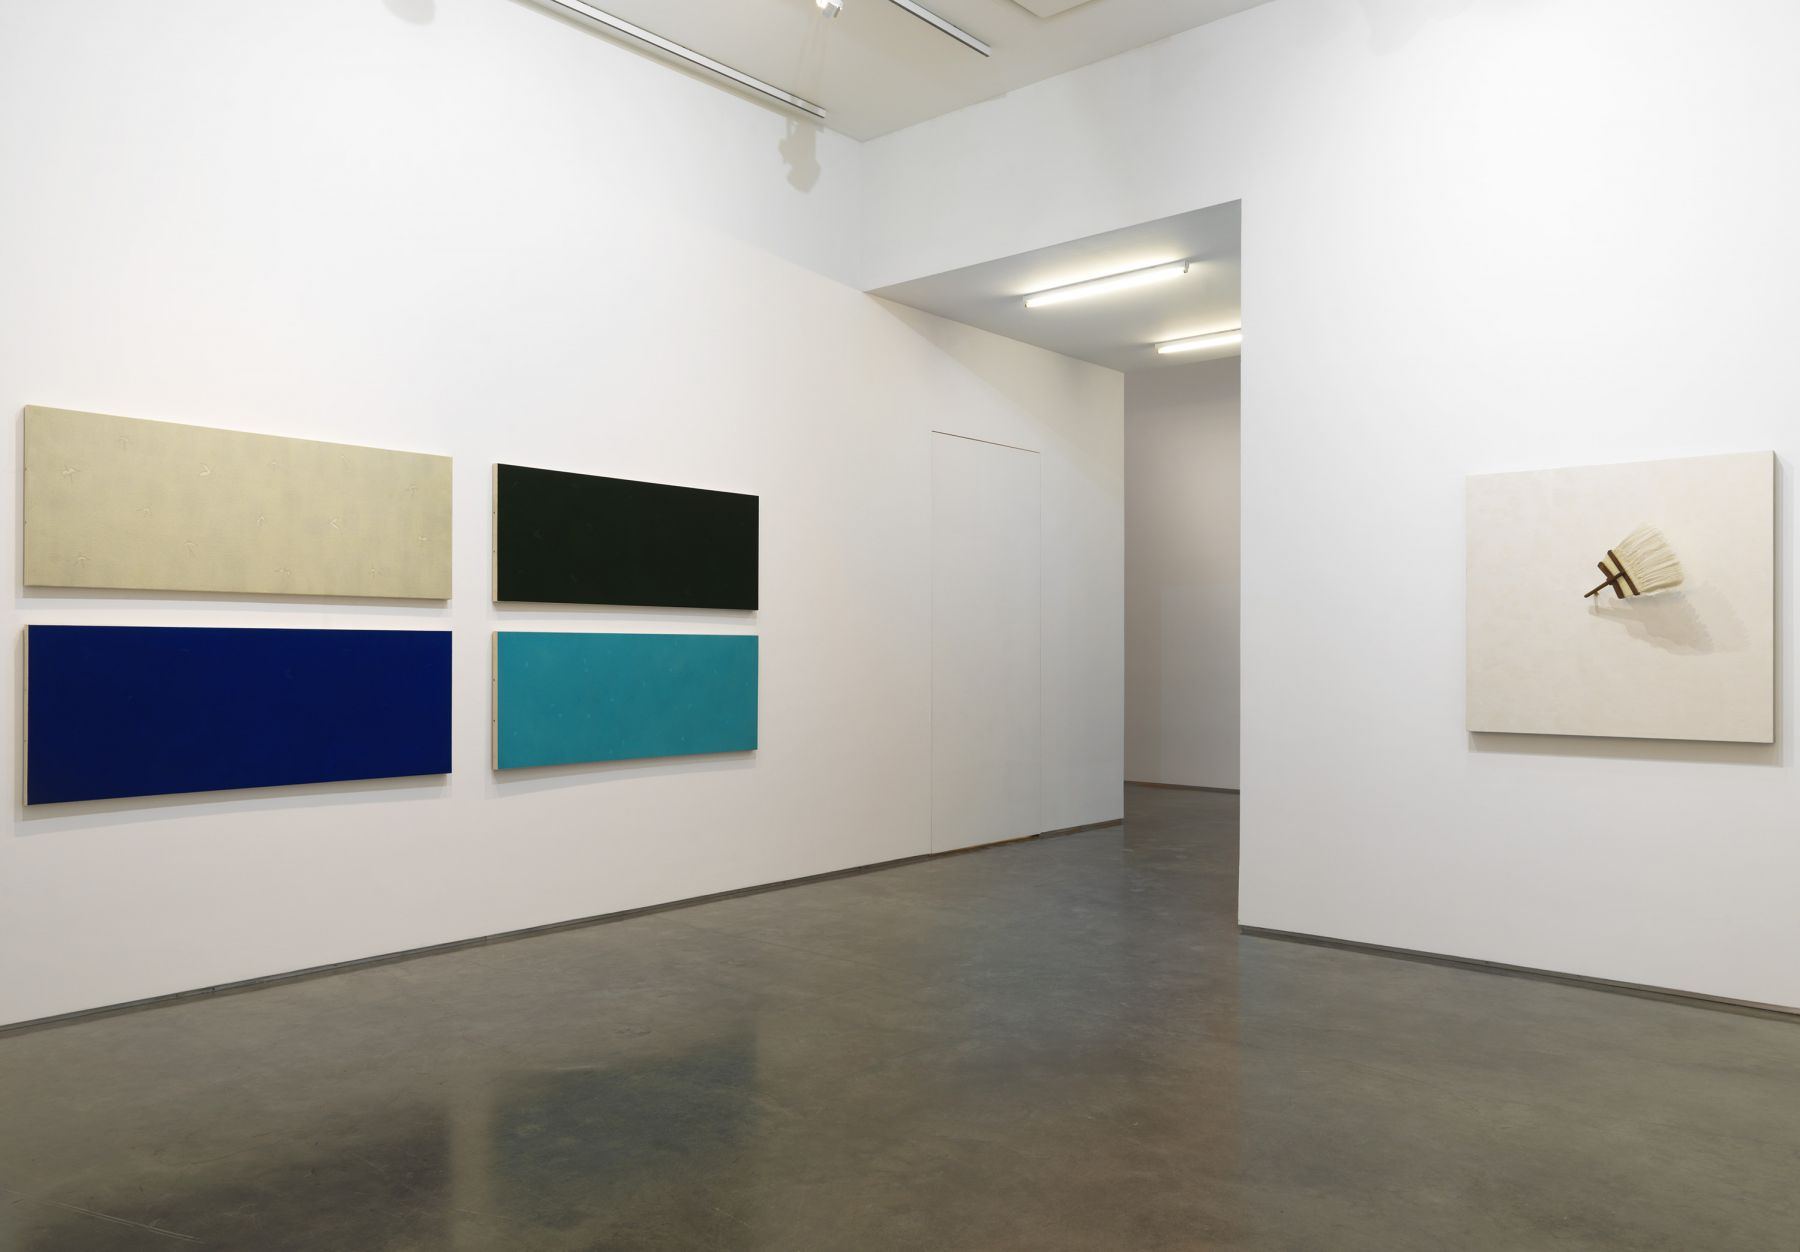 AND I SAY(Installation View), Boesky Gallery, 2017